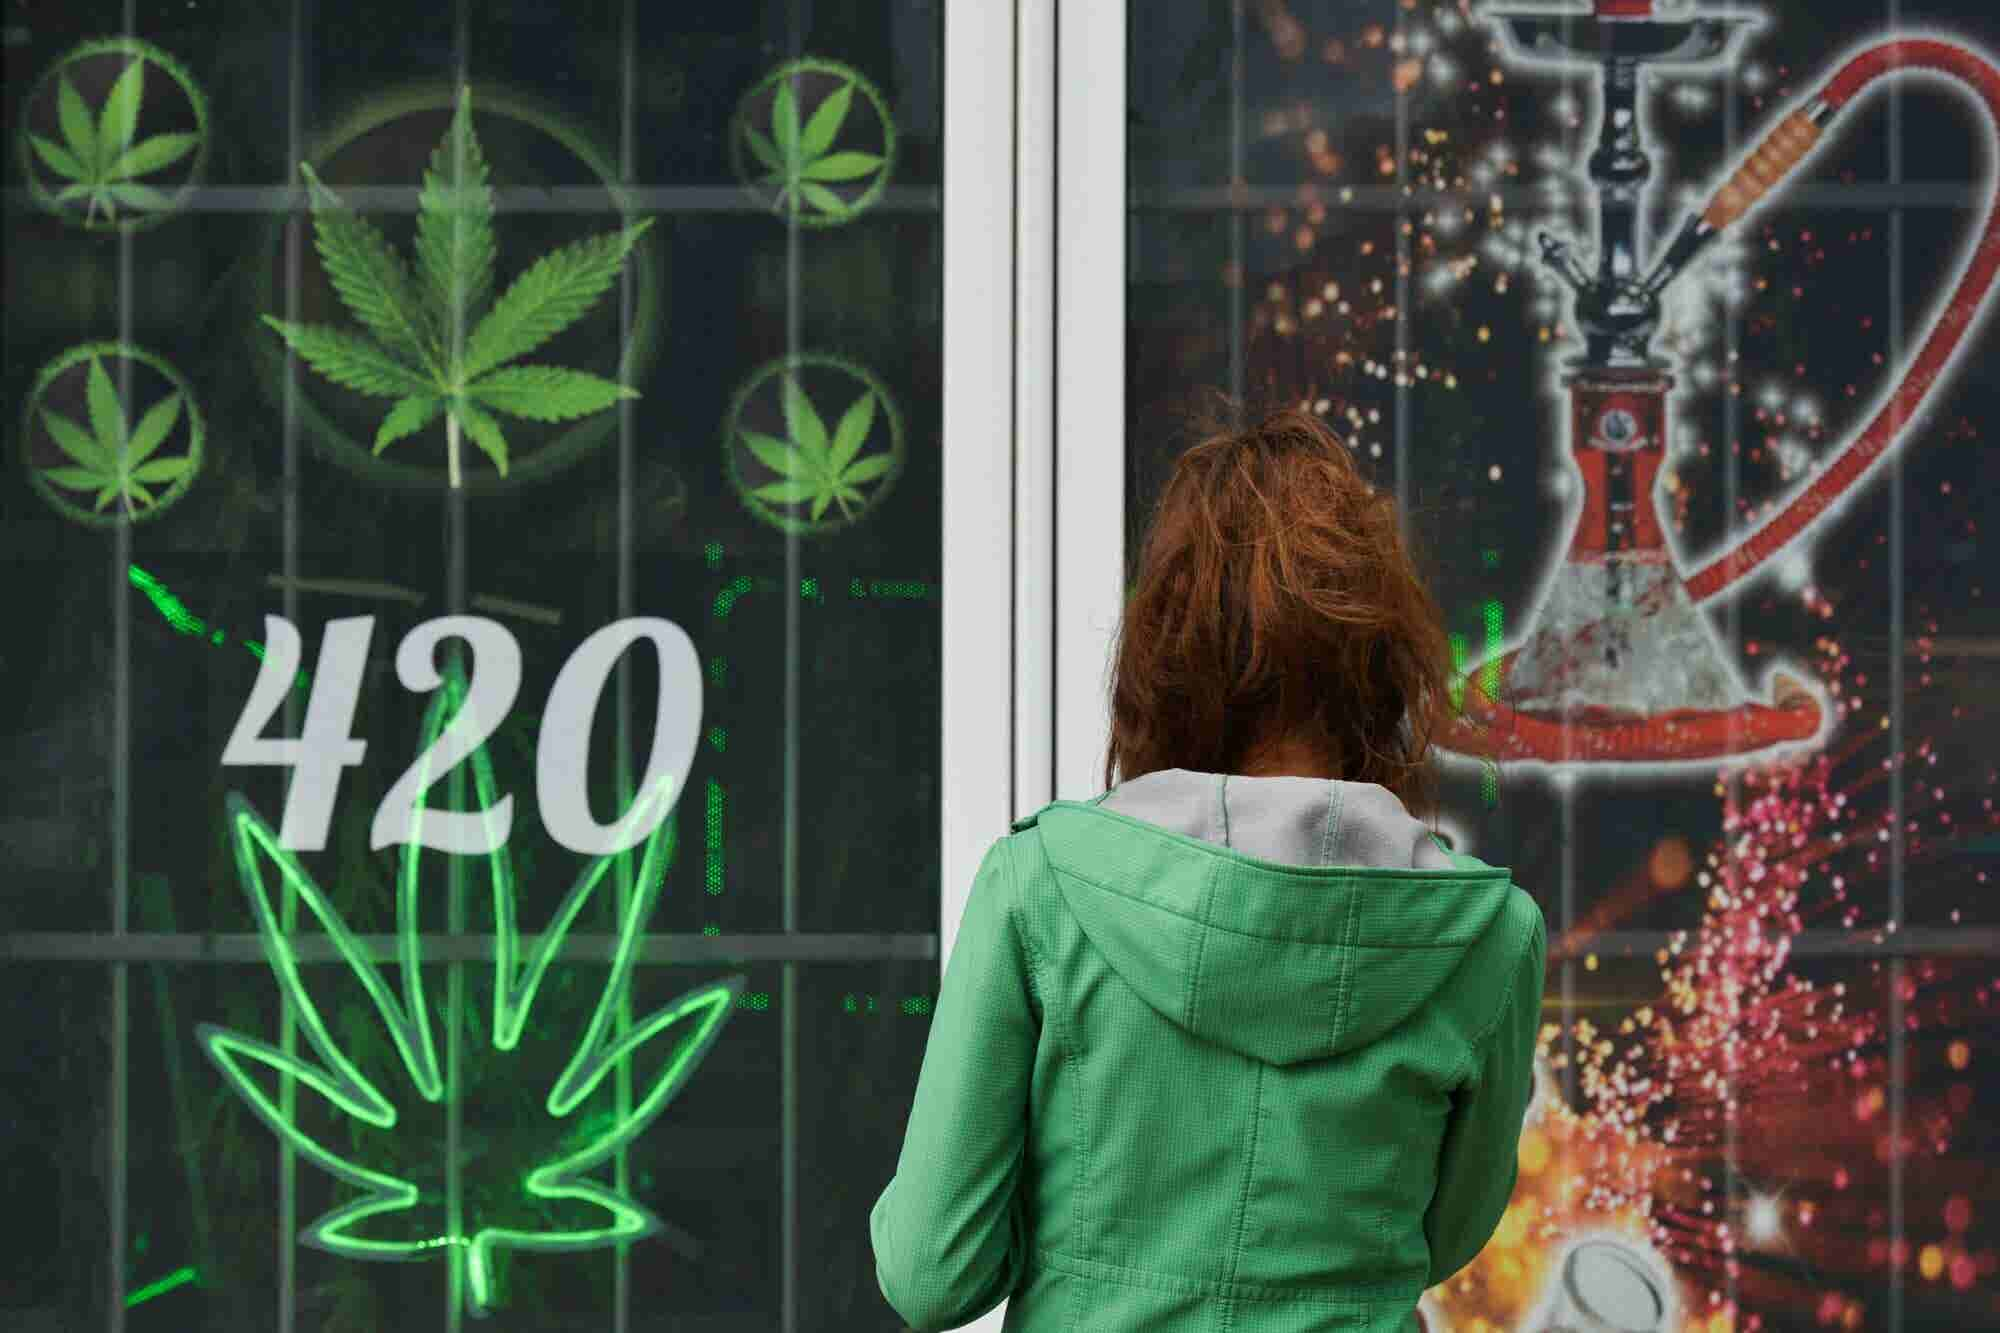 7 Stats to Know About Legal Cannabis and CBD This 4/20